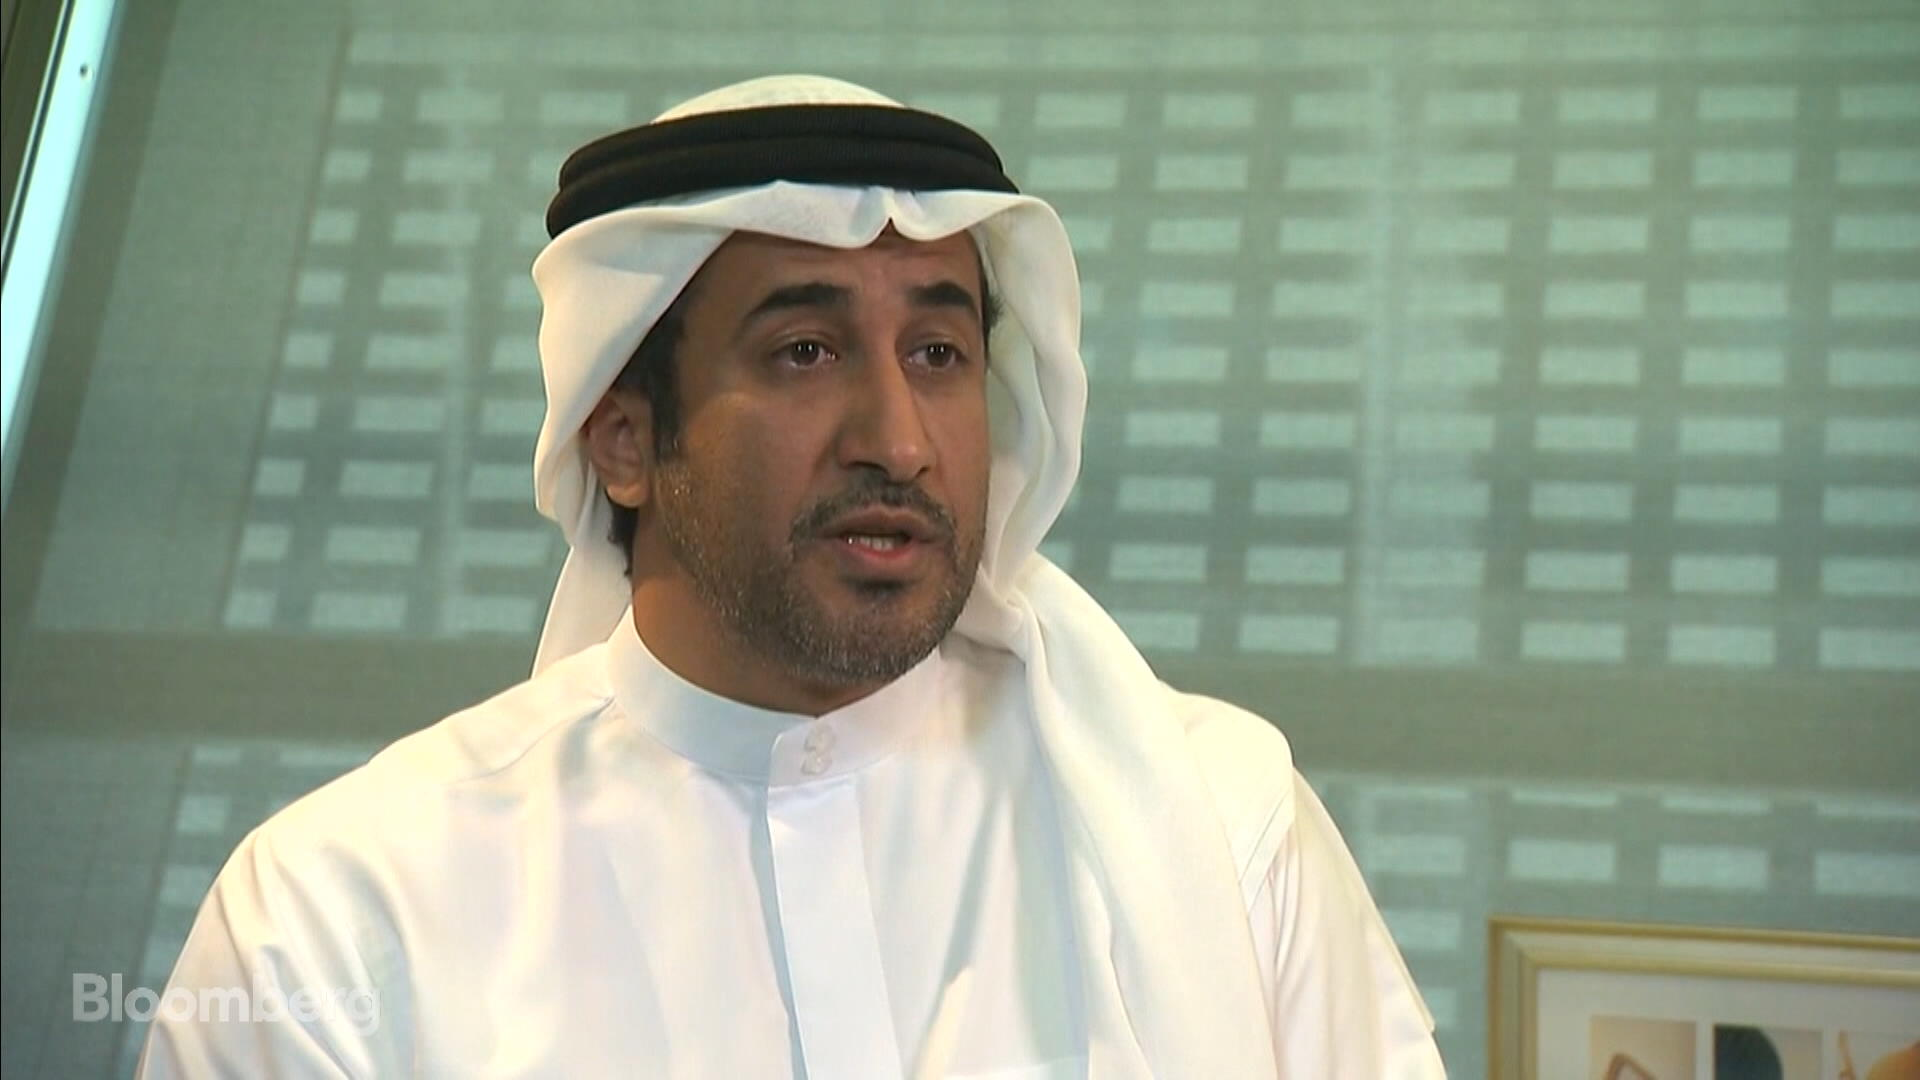 taqa 1 1 Total revenues of aed 41 billion, an increase of 6% on previous year (q1 2016: aed 39 billion), driven primarily by the impact of higher realised oil and gas prices ebitda of aed 24 billion, up 23% on previous year period (q1 2016: aed 20 billion) boosted by the higher realised commodity prices and sustained cash cost savings.